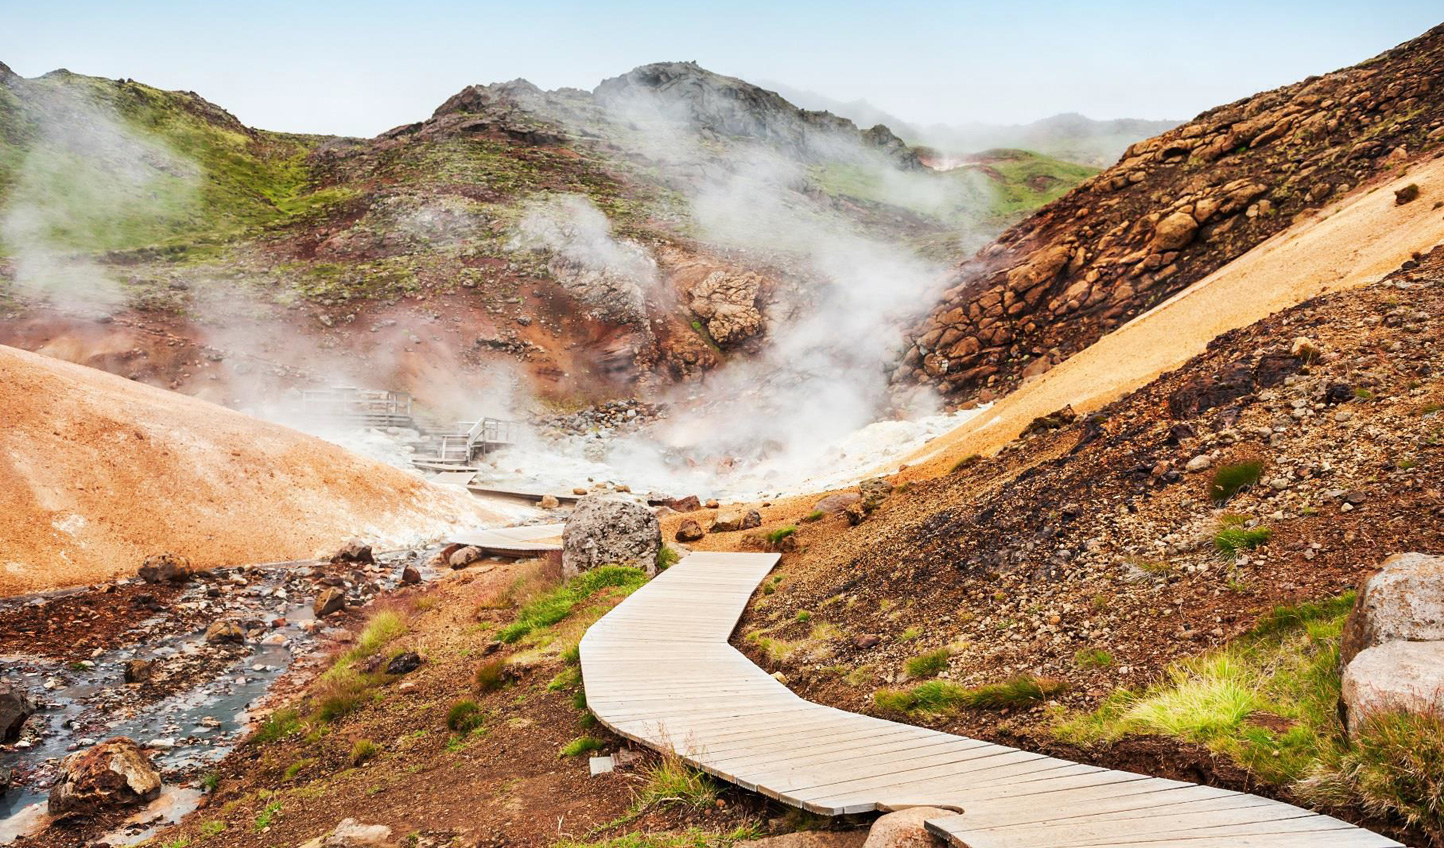 Discover Iceland's geothermal wonders on this luxury volcano tour